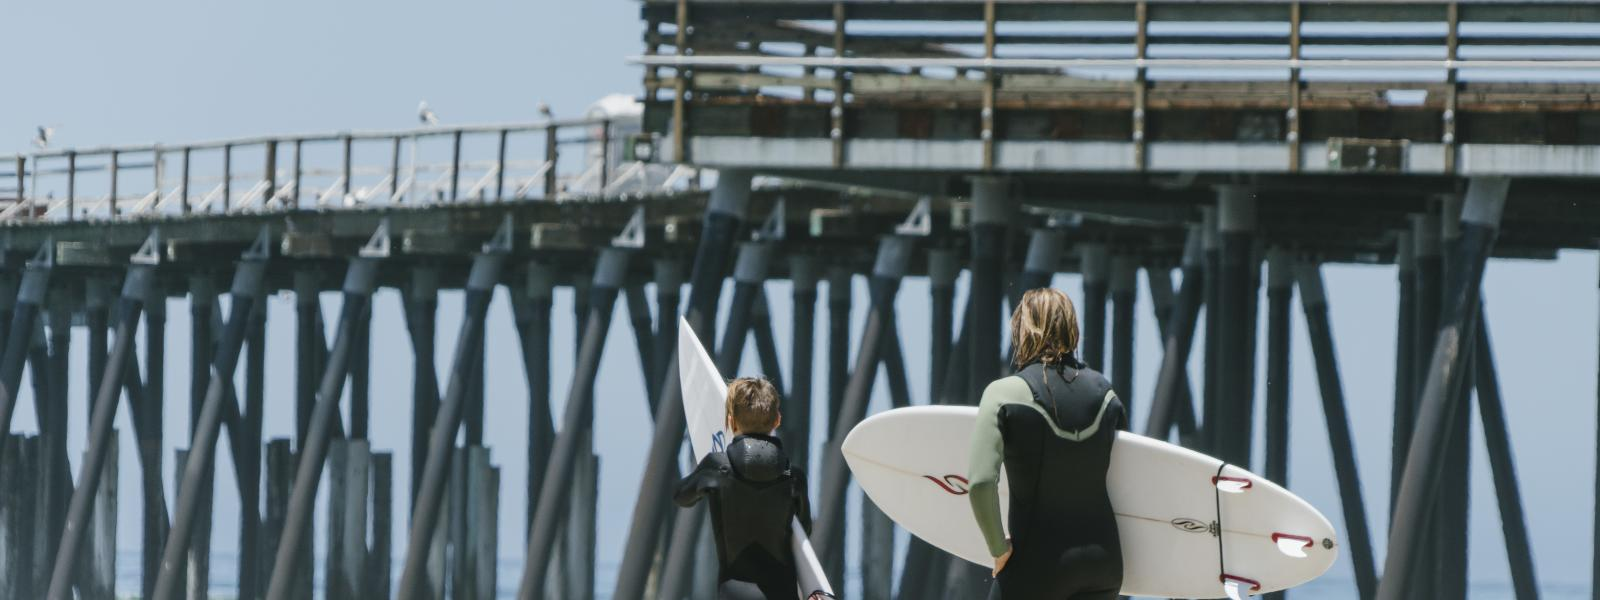 Surfers prepare to enter the water near the Pismo Beach Pier in SLO CAL